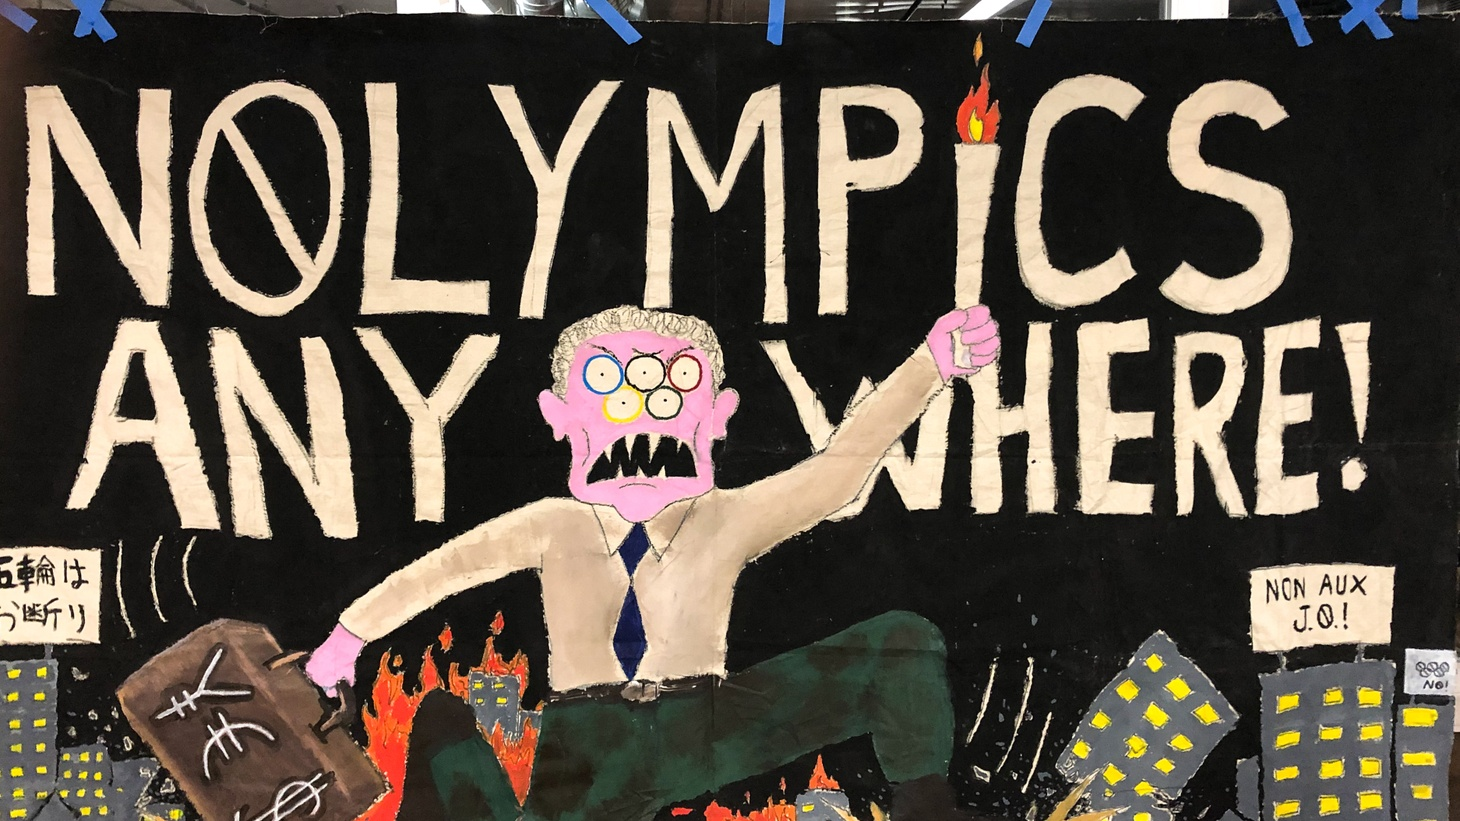 A poster hanging at the NOlympics meeting last month, where activists from Los Angeles and Tokyo talked about the families displaced by preparations for the Olympic games.